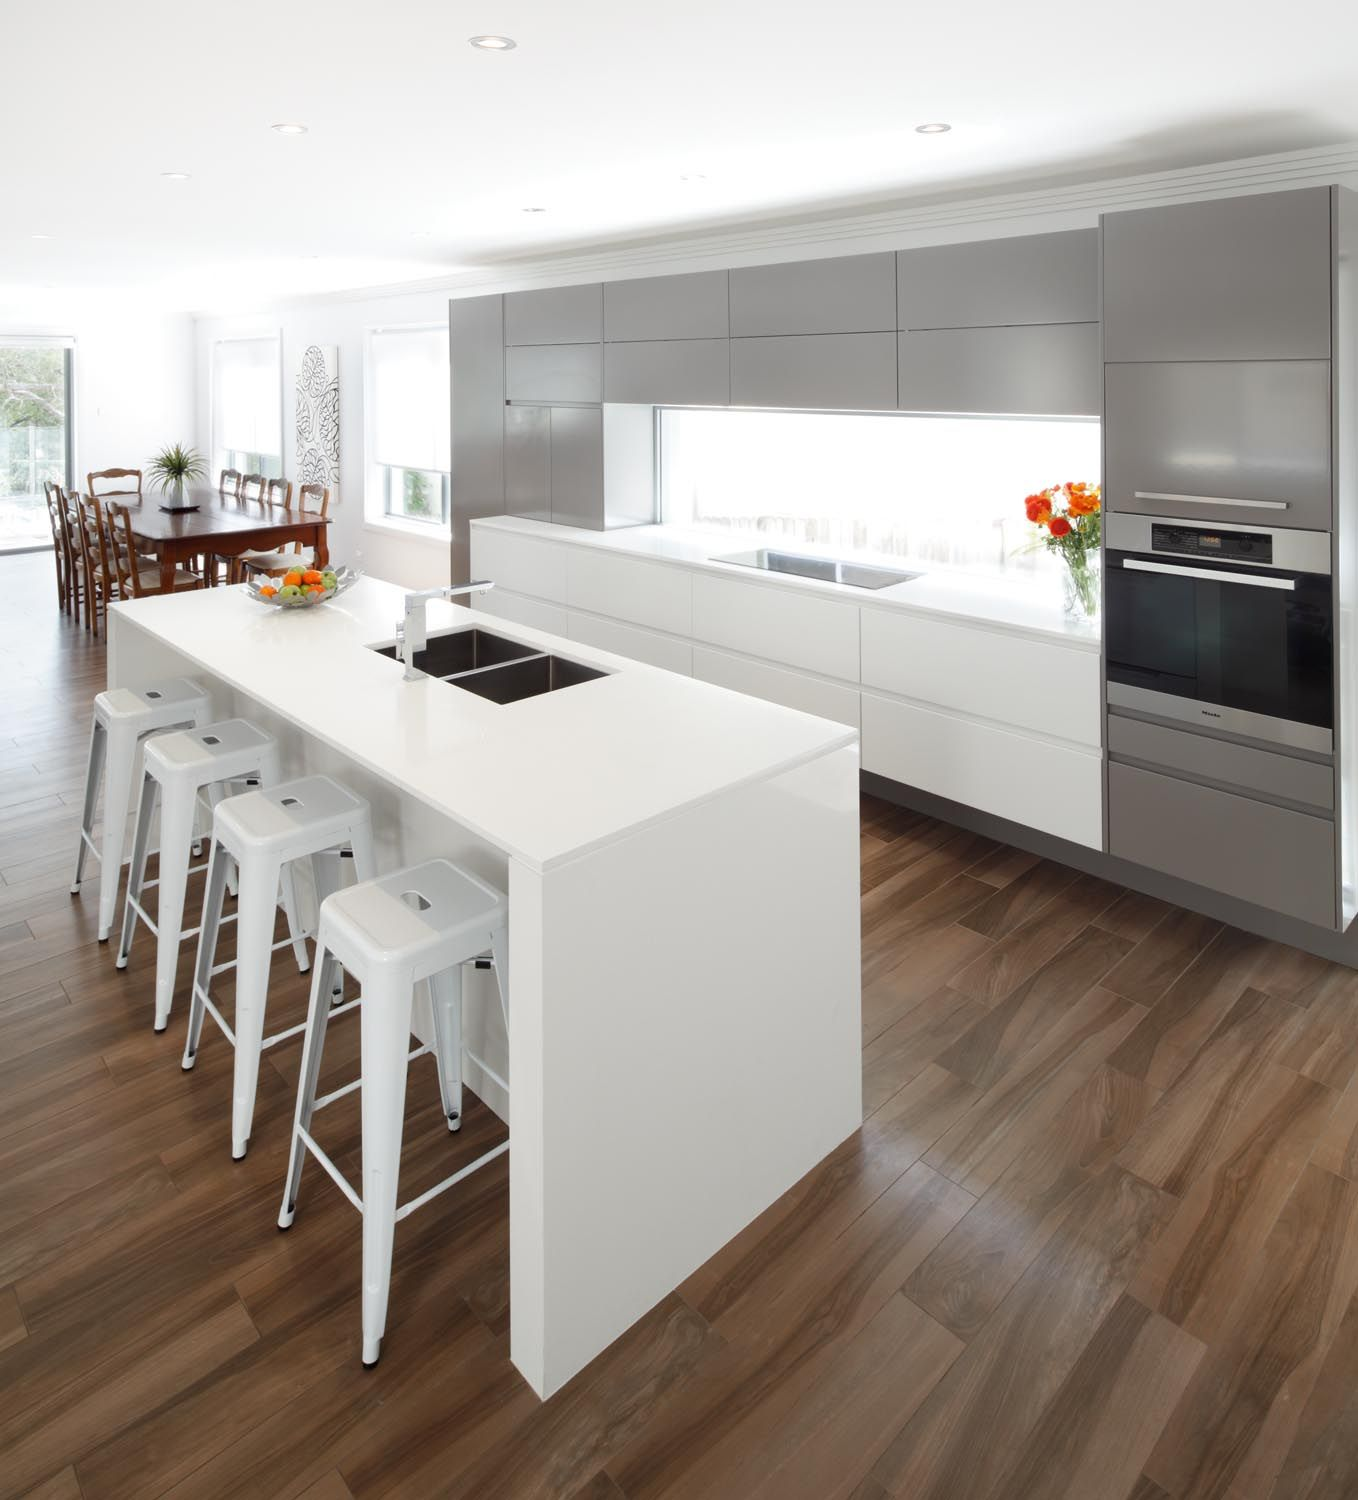 Best This Sleek Modern Kitchen Design Incorporates White 400 x 300